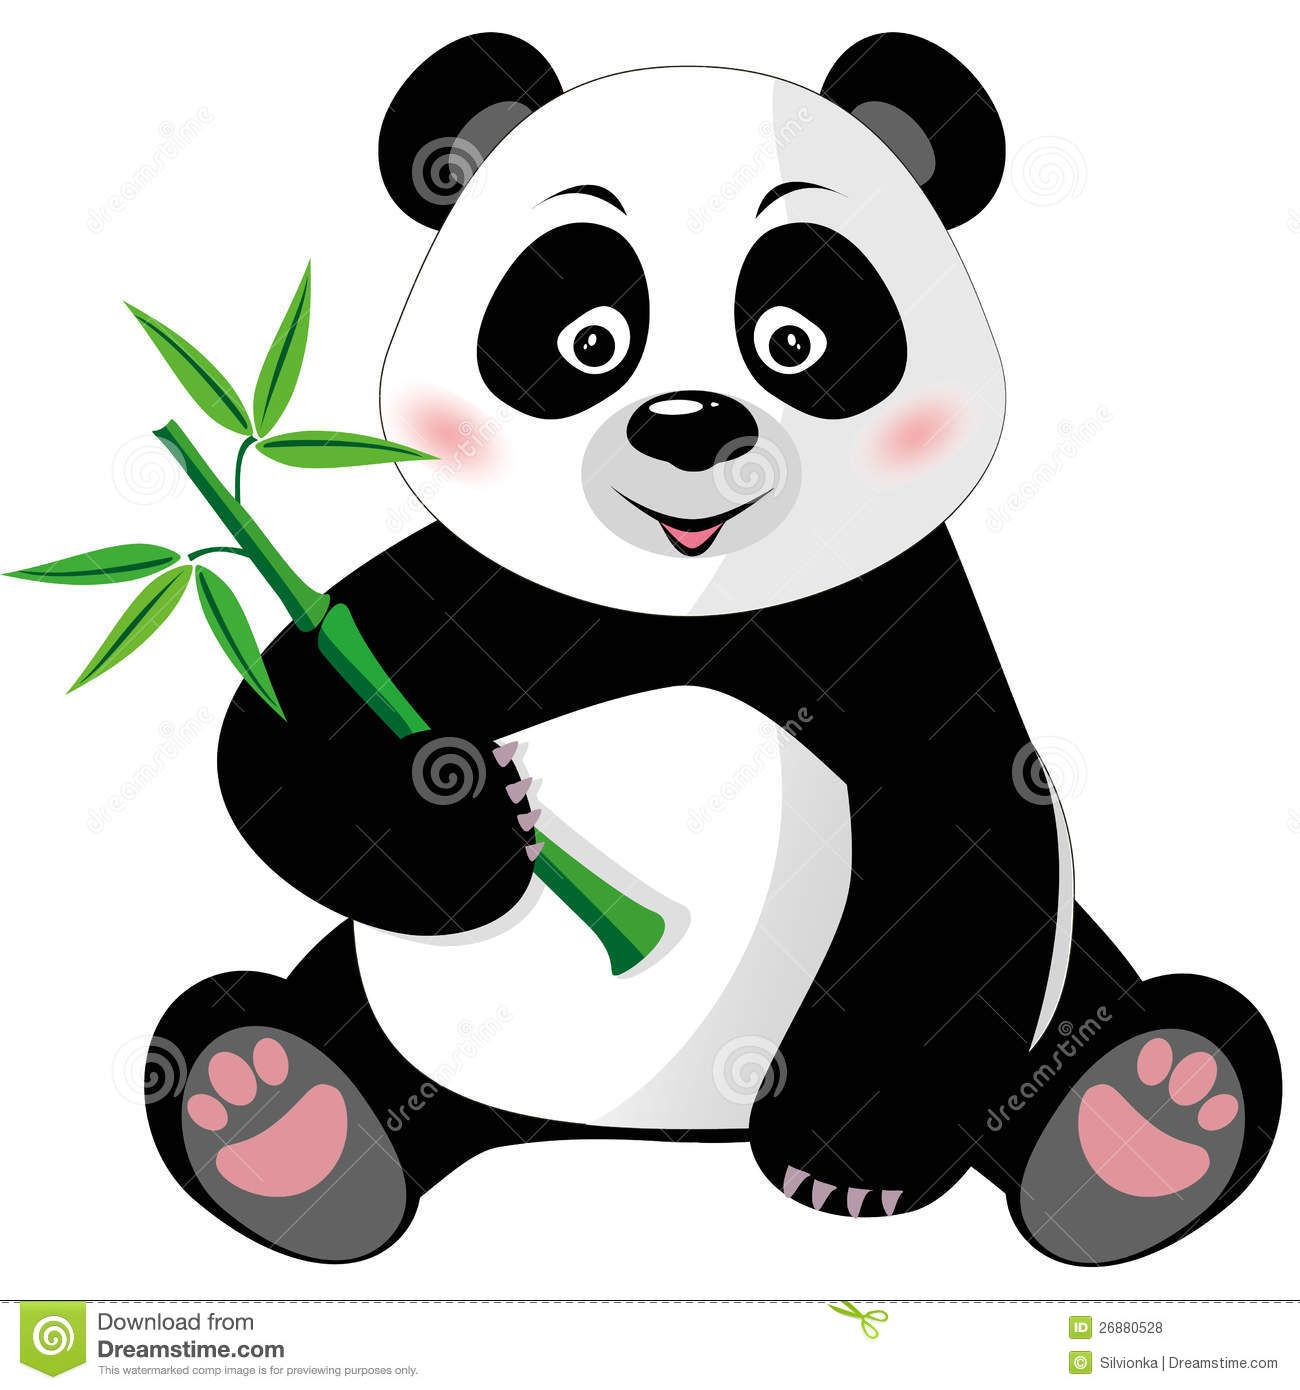 Panda bear clipart images svg freeuse Clipart Panda Bear Baby panda bear clip art | Panda Cuties ... svg freeuse